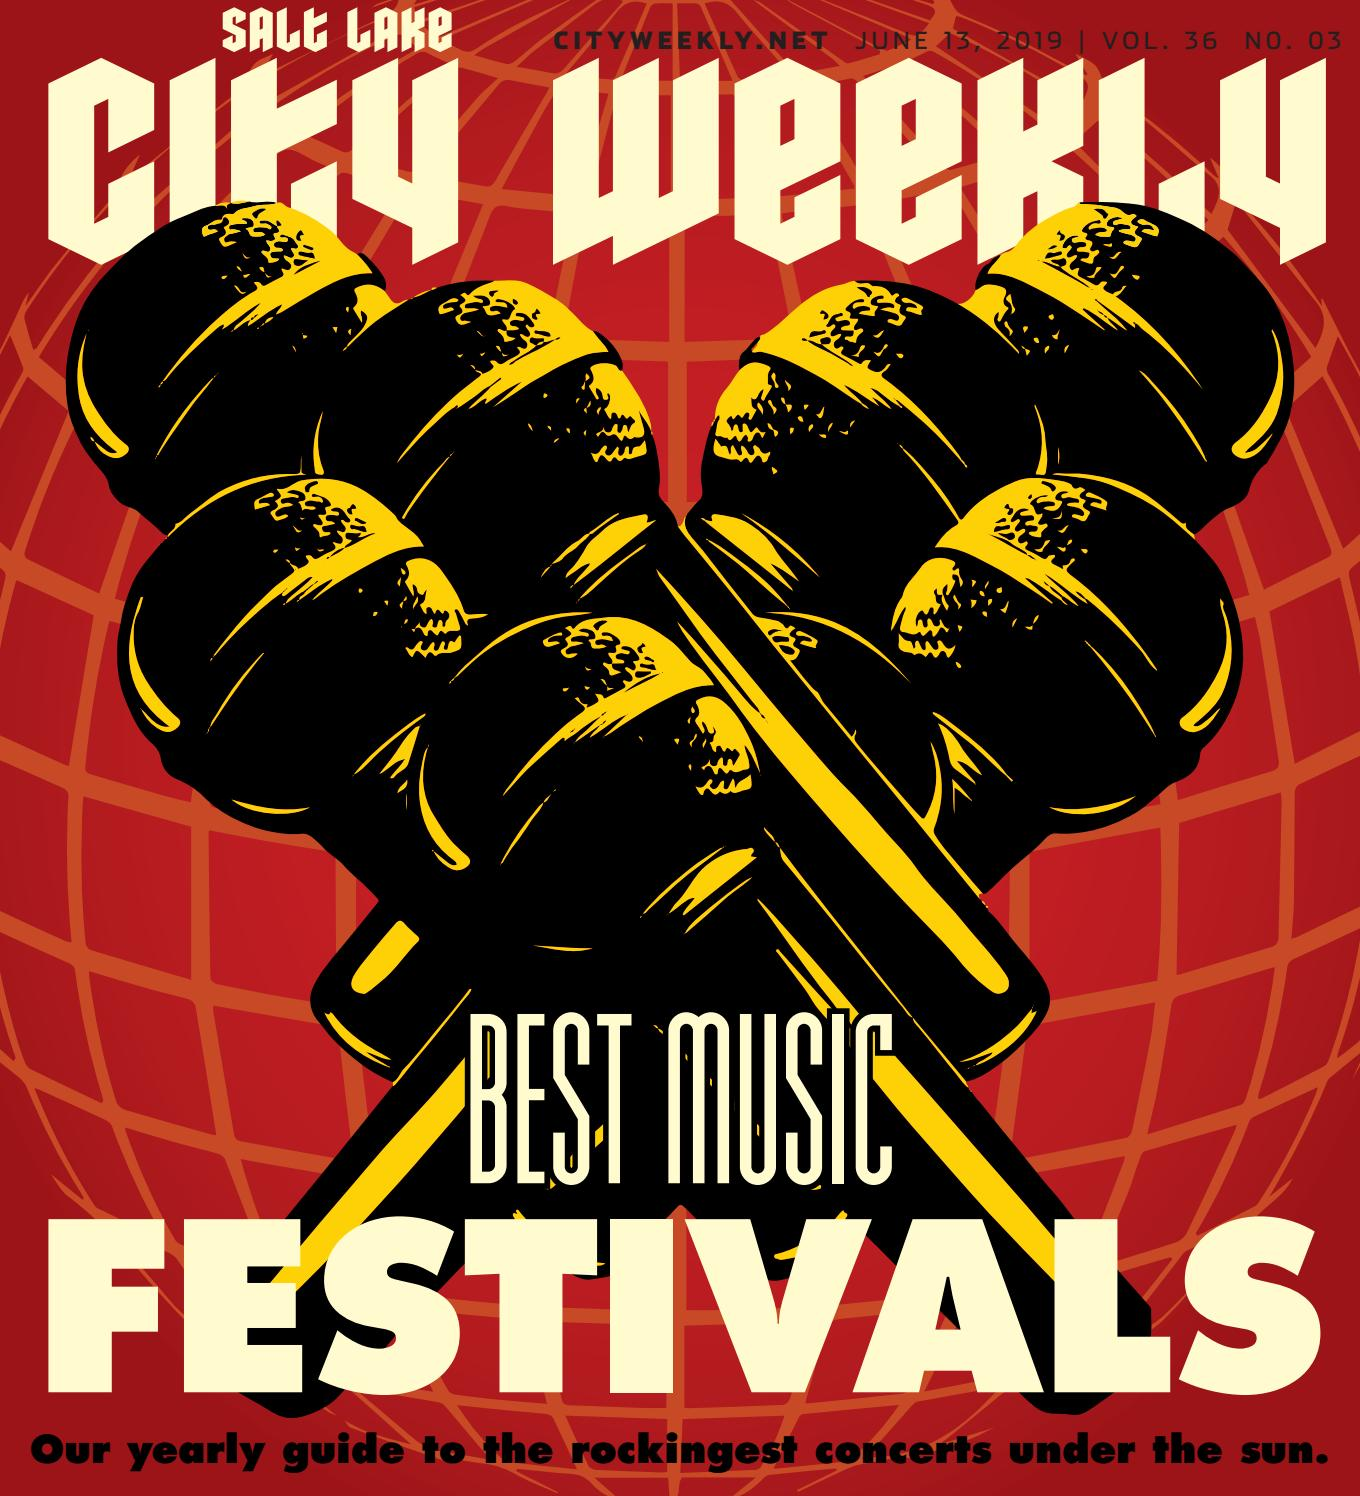 City Weekly June 13, 2019 by Copperfield Publishing - issuu